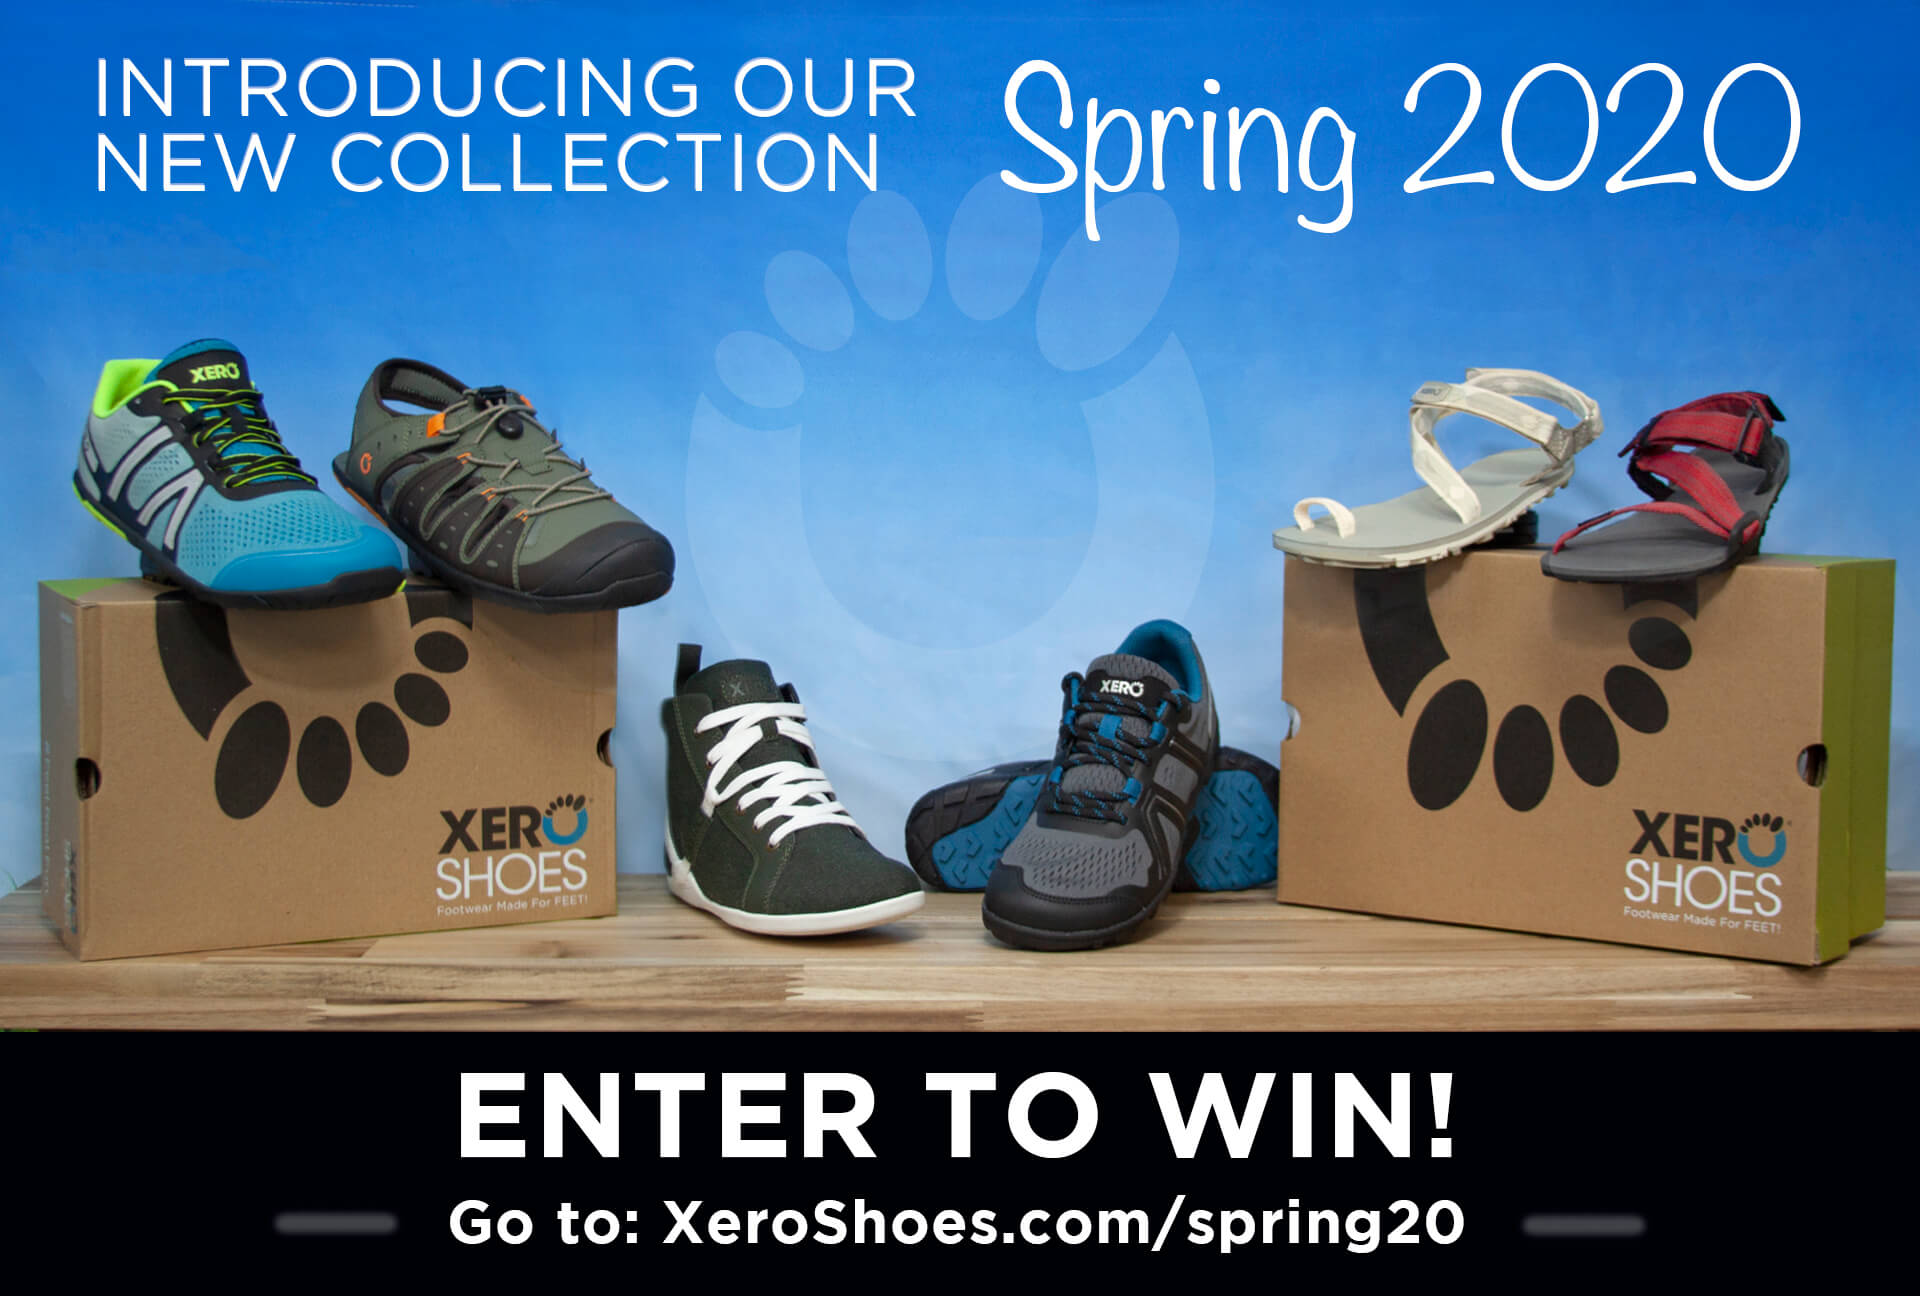 SIX New Xero Shoes for 2020!